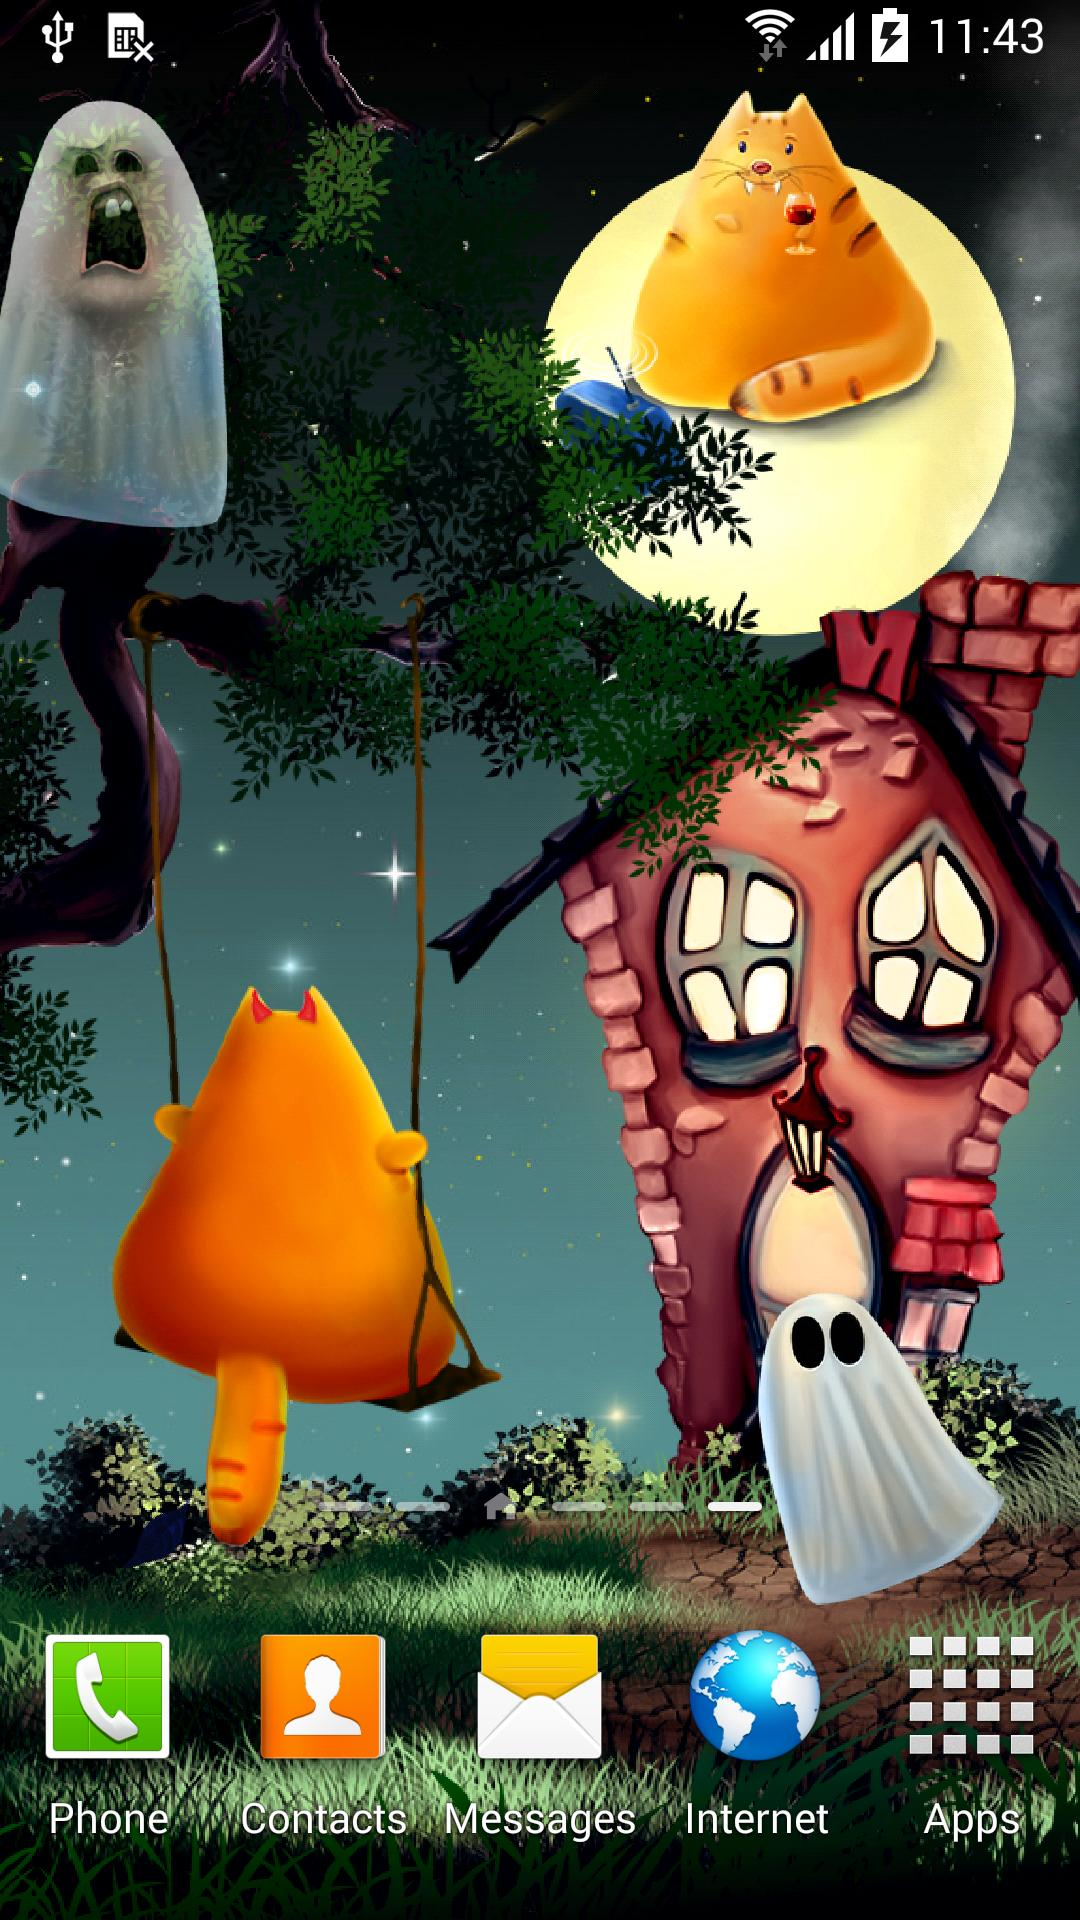 Cute Halloween Wallpaper for Android   APK Download 1080x1920